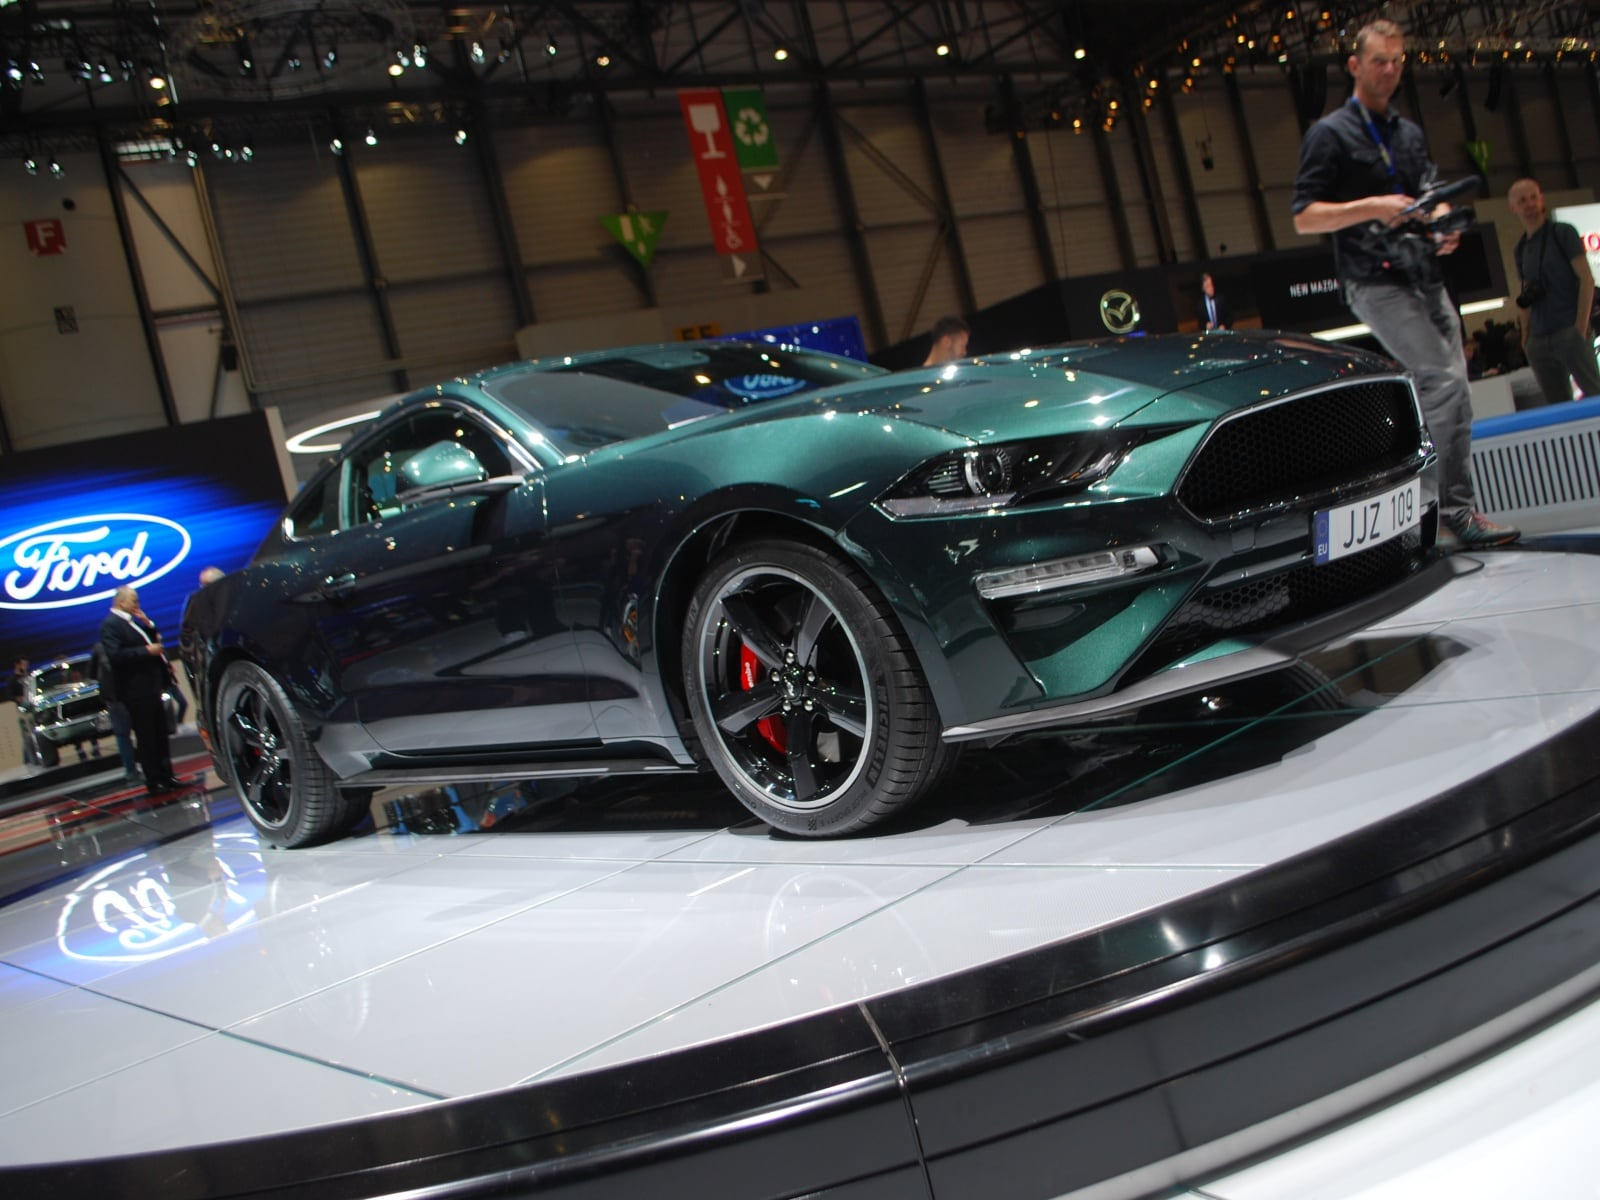 ford mustang bullitt a ginevra 2018 ginevra 2018 le foto dagli stand panoramauto. Black Bedroom Furniture Sets. Home Design Ideas